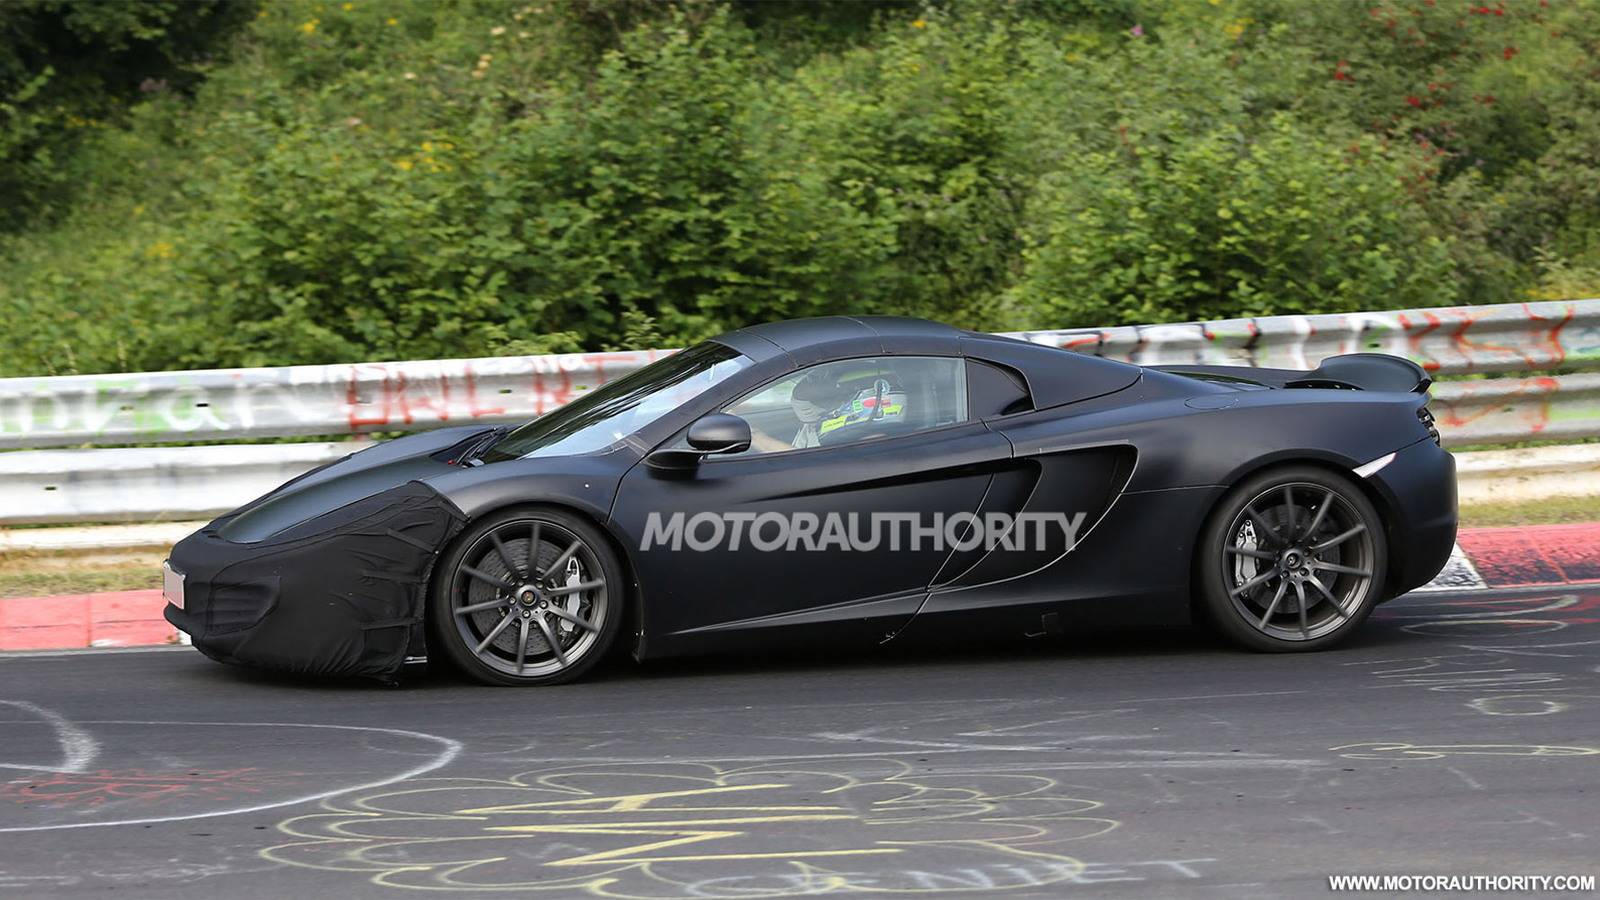 2014 McLaren MP4-12C Spider facelift spy shots